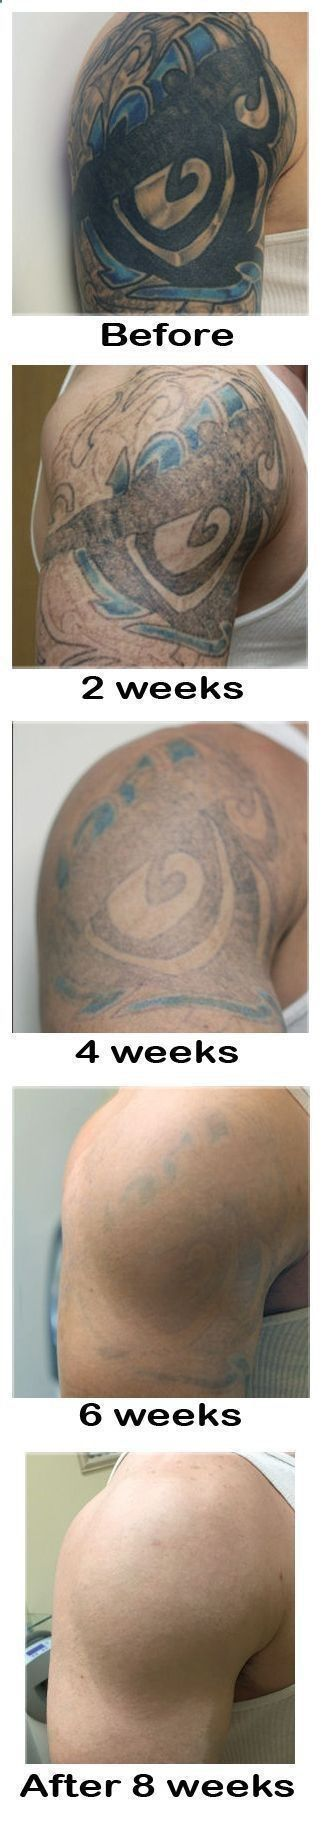 Tattoo after 8 weeks. Lemon   this ingredient can take it off. Learn more about laserless tattoo removal here: laserlesstattoore... #tattoo #tattoos #cover_up_tattoos #tattoo_cover_up #tattoo_removal #tattoos_for_women #temporary_tattoos #laser_tattoo_removal #tattoo_removal_cream #tattoo_removal_before_after #home_tattoo_removal #remove_tattoo_at_home #removal_cream #permanent_makeup #cosmetic_tattooing #permanent_makeup_remove #cosmetic_tattooing_remove #removetattoos